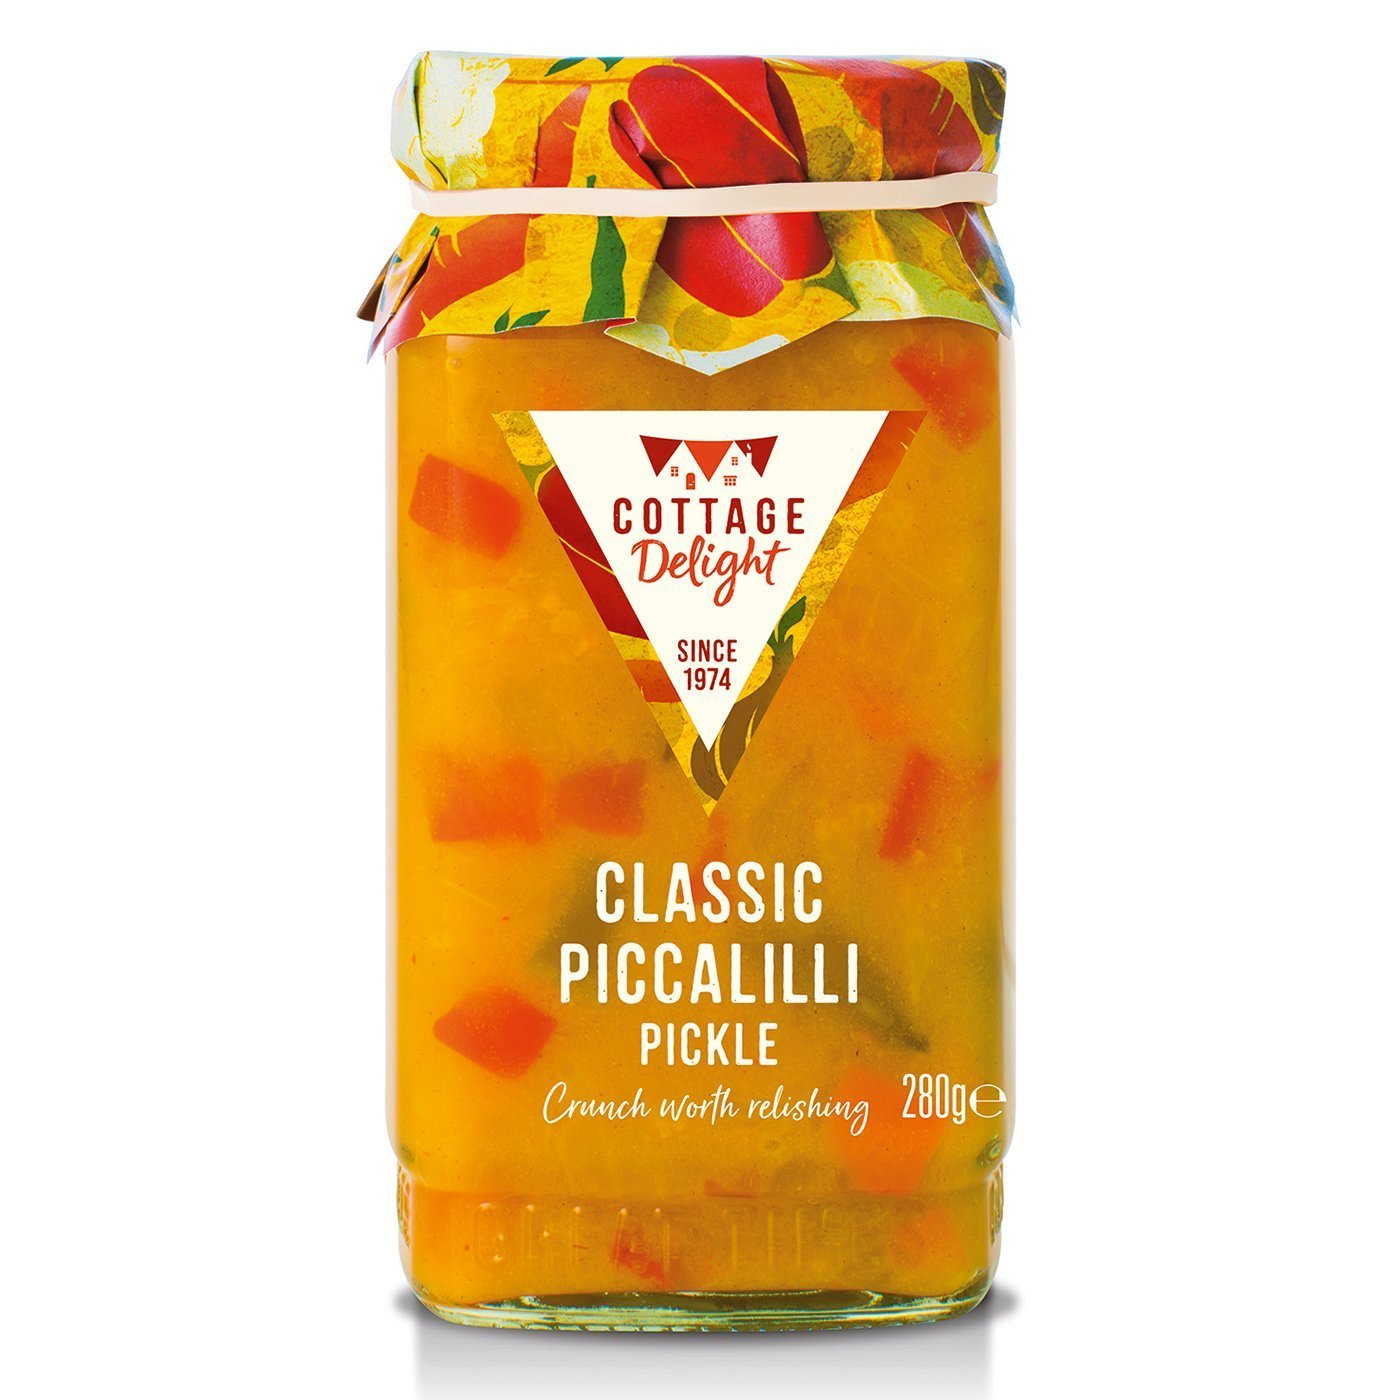 Cottage Delight Classic Piccalilli Pickle 280g